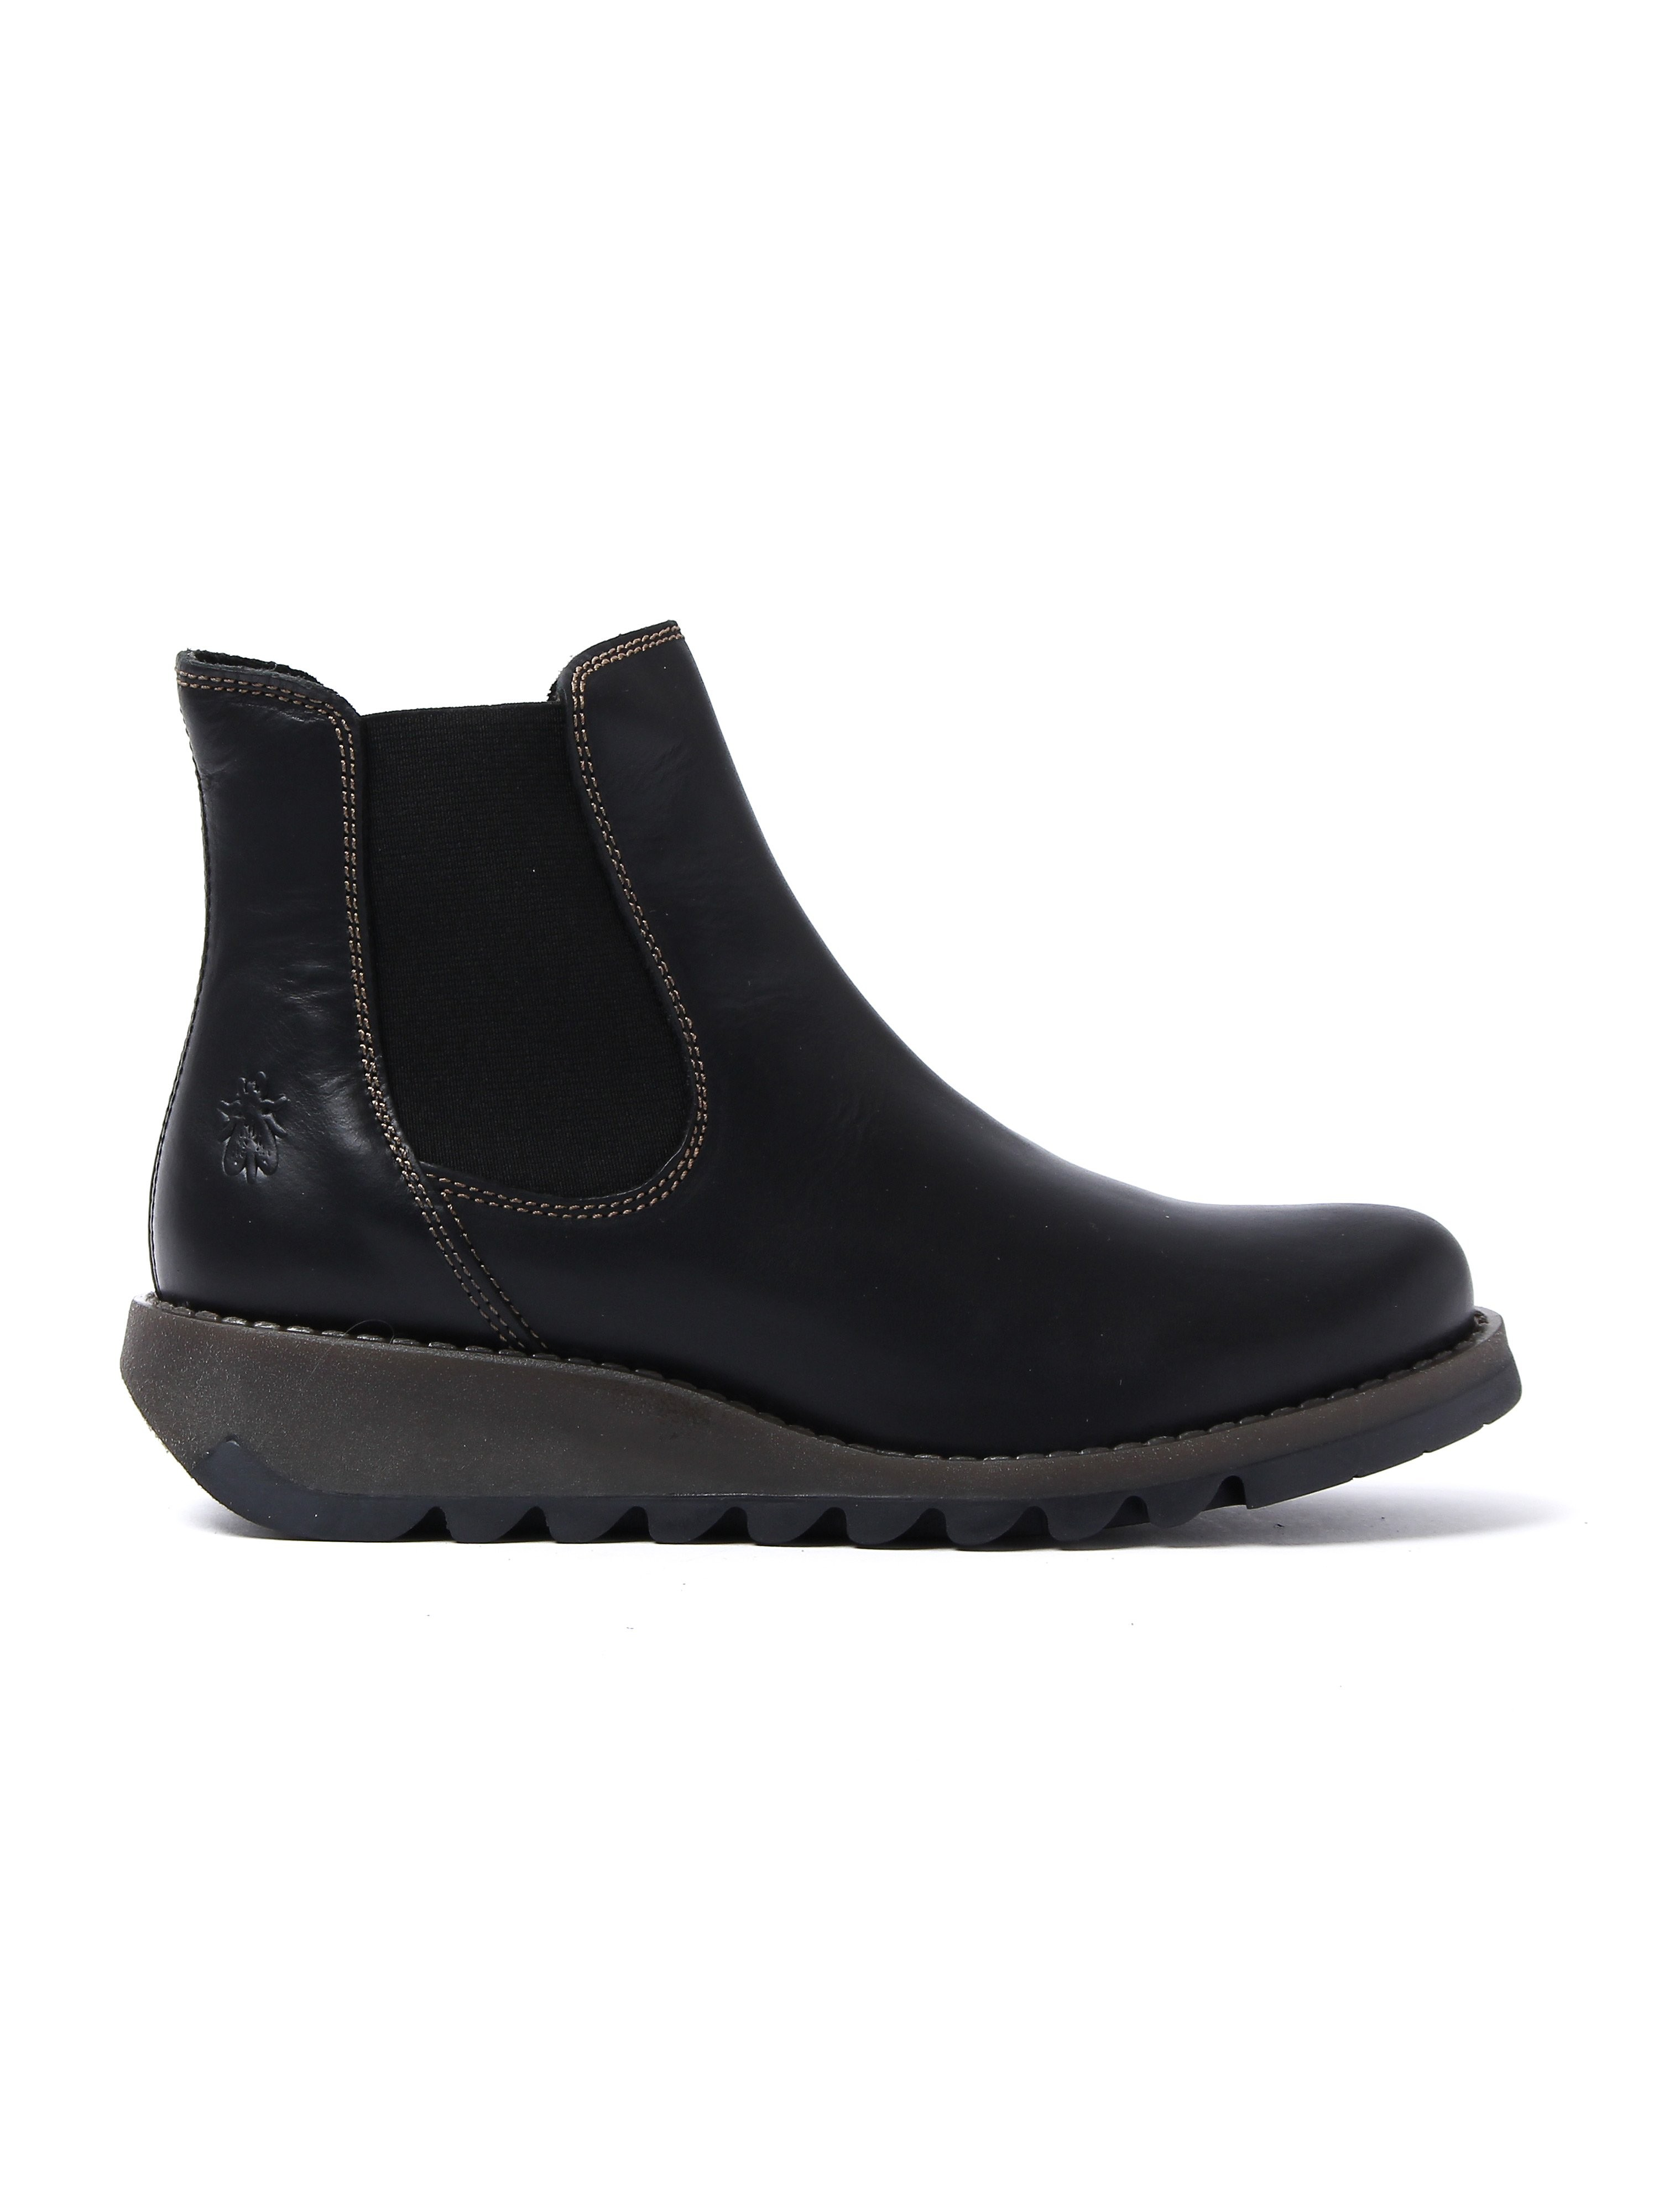 Fly London Women's Salv Chelsea Boots - Black Leather